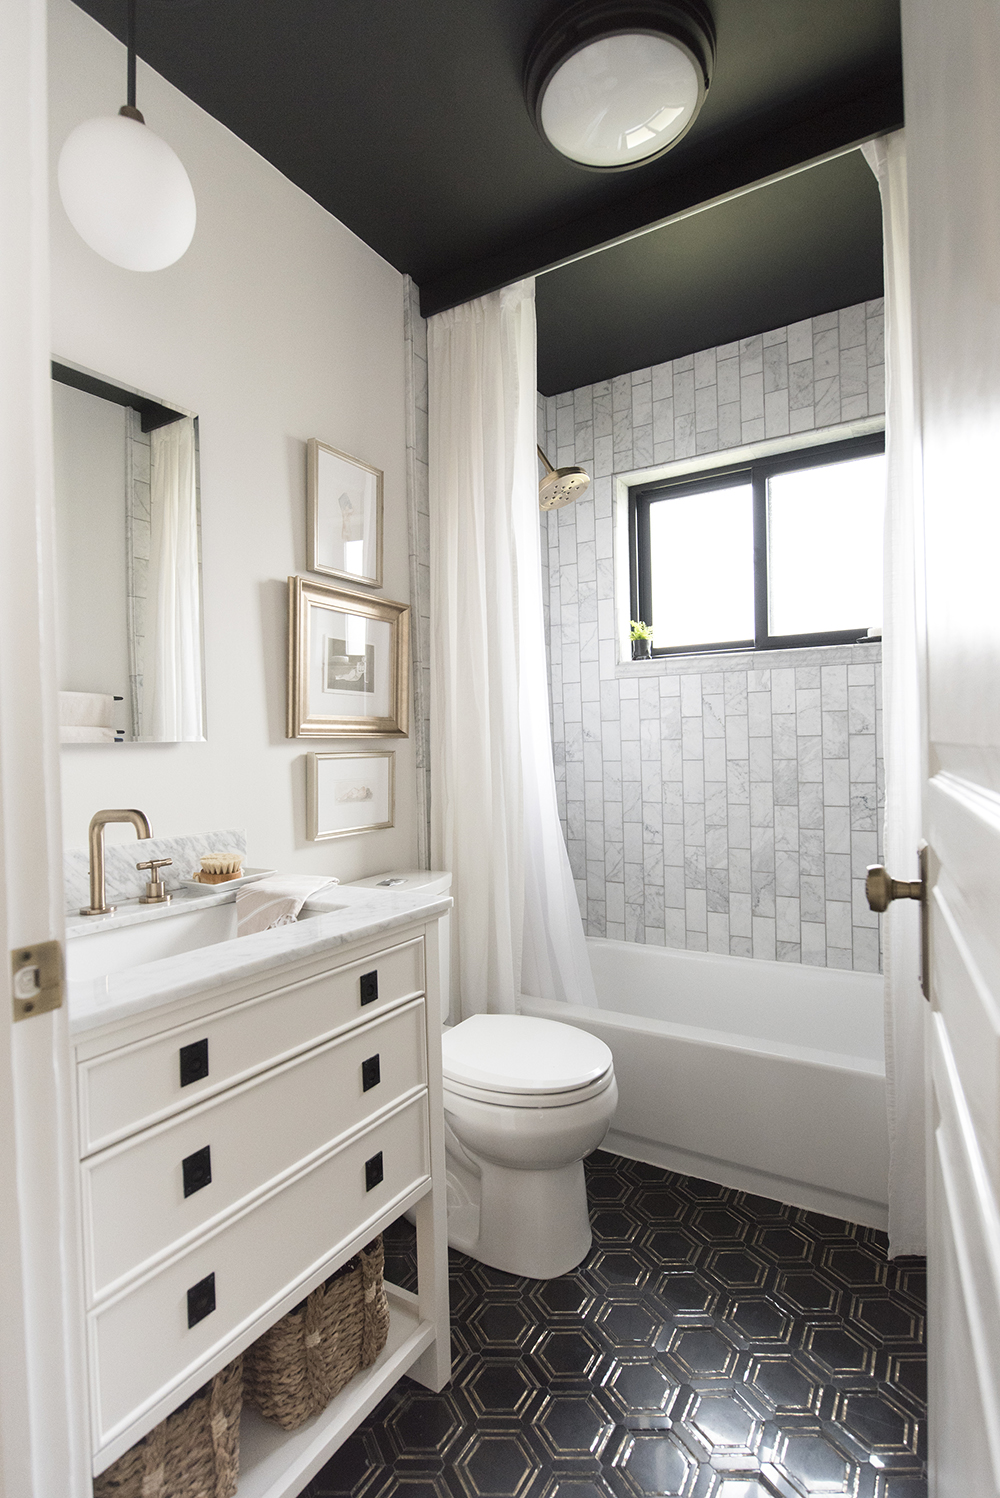 Ways to Add Value to Your Home - roomfortuesday.com